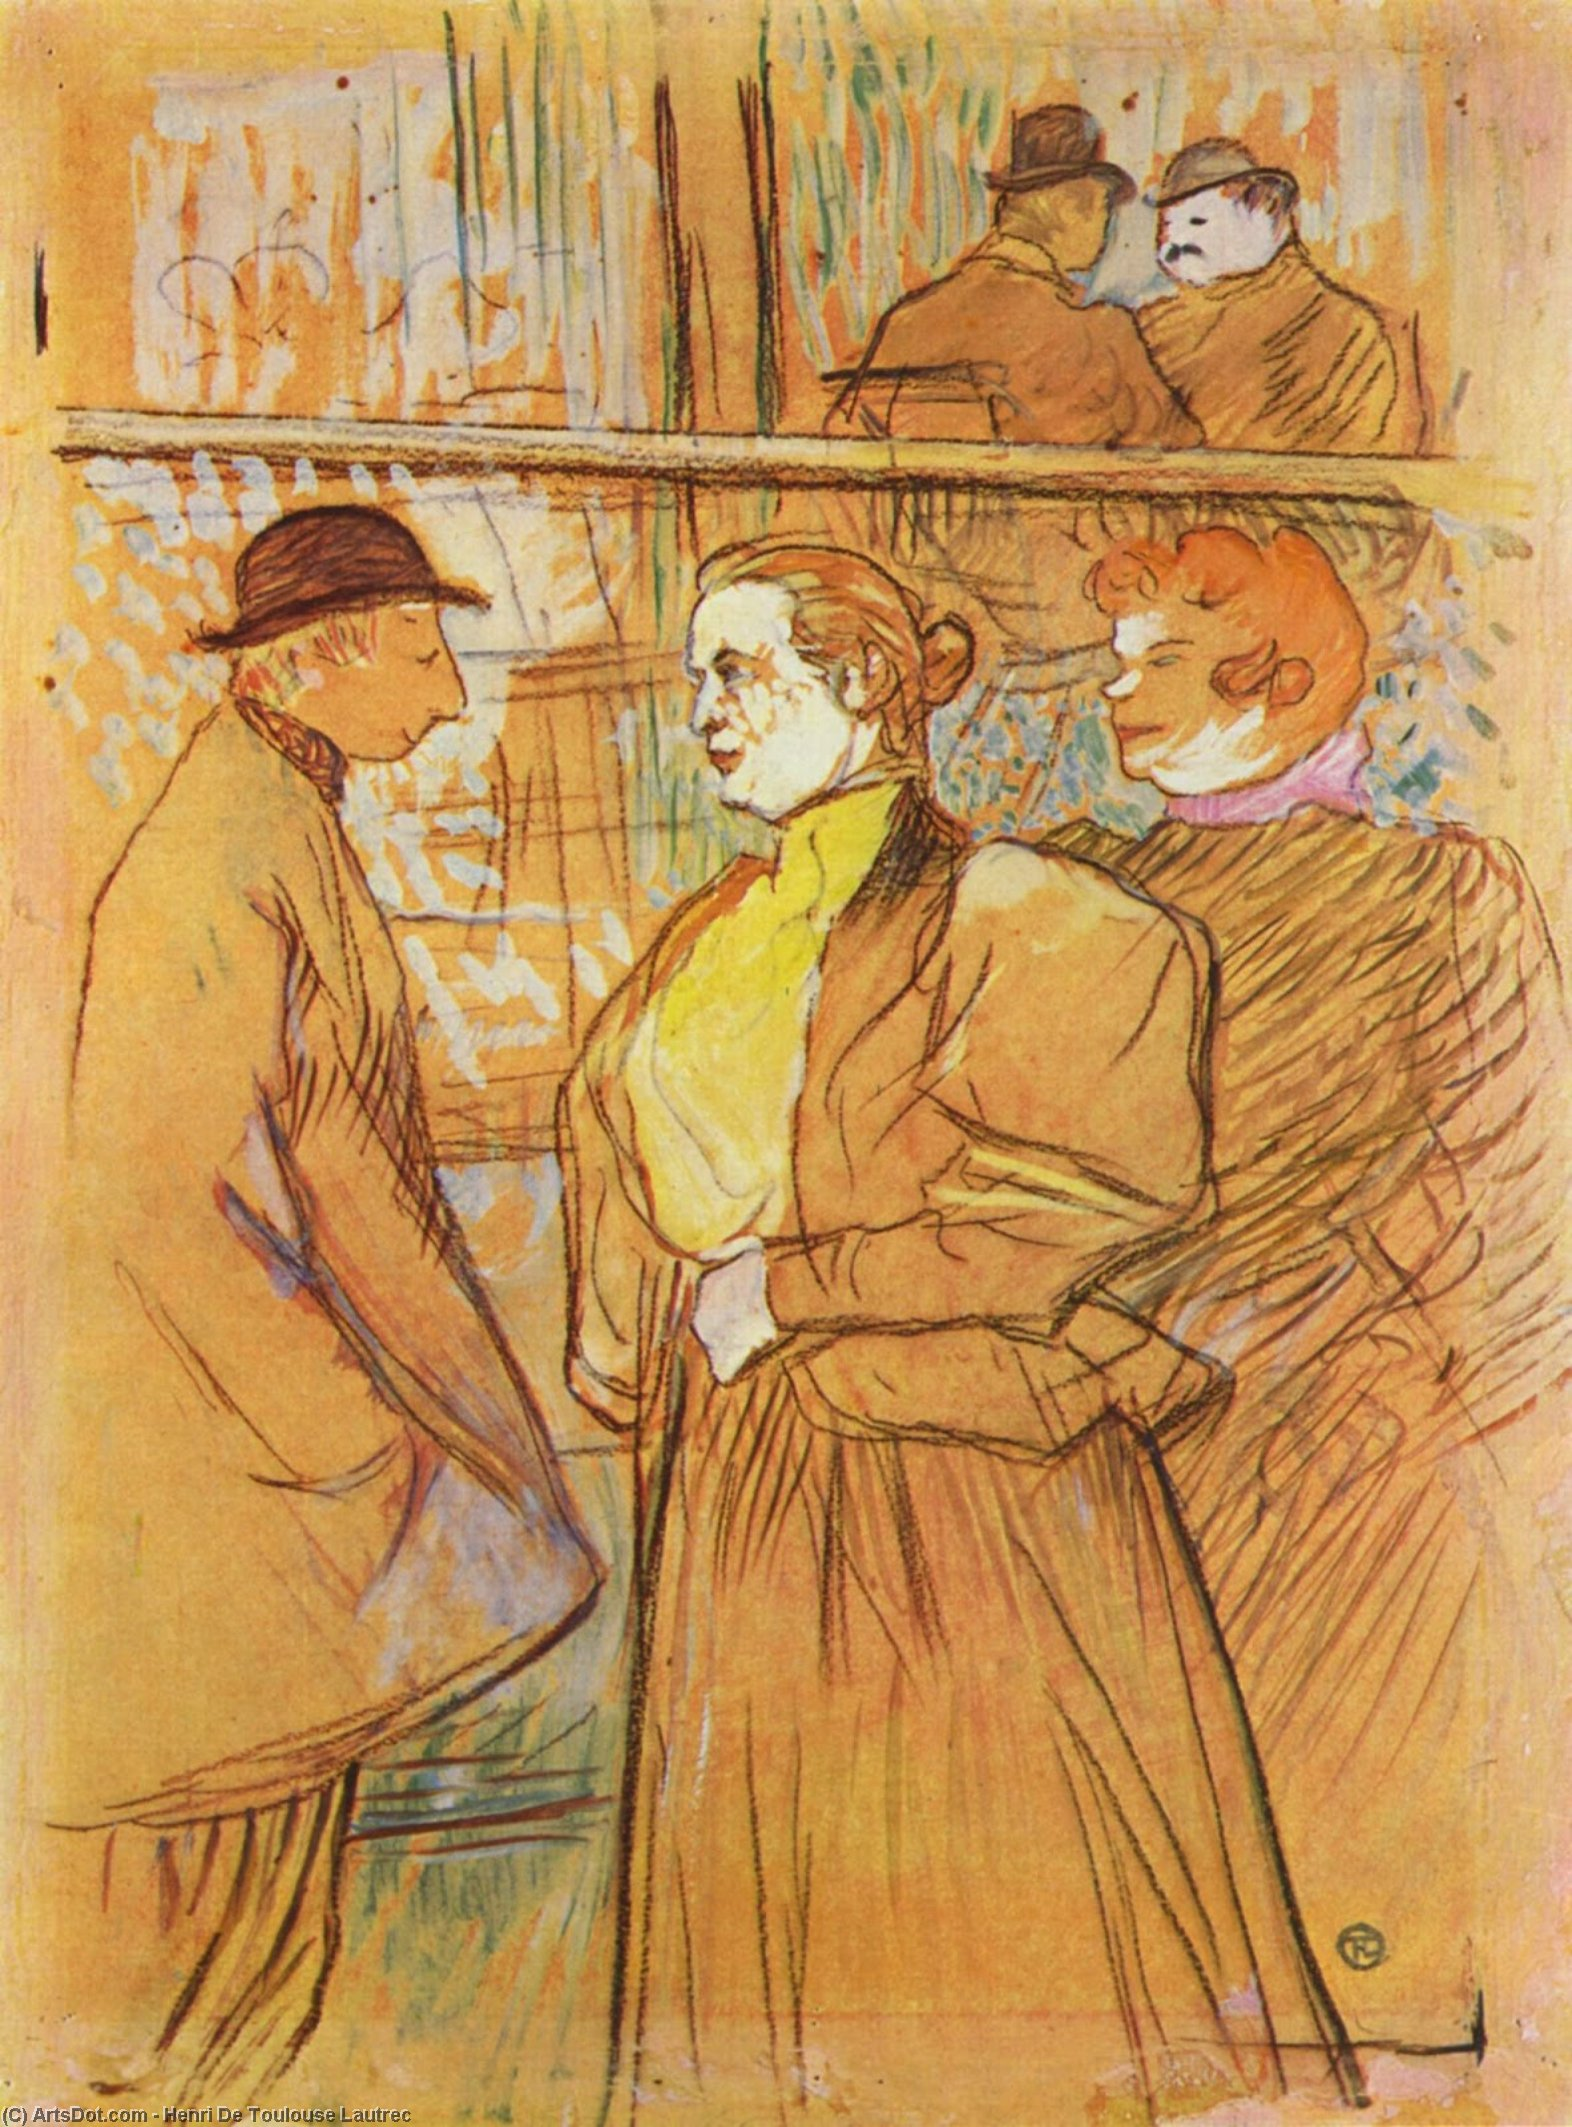 in moulin rouge, pastell von Henri De Toulouse Lautrec (1864-1901, France)